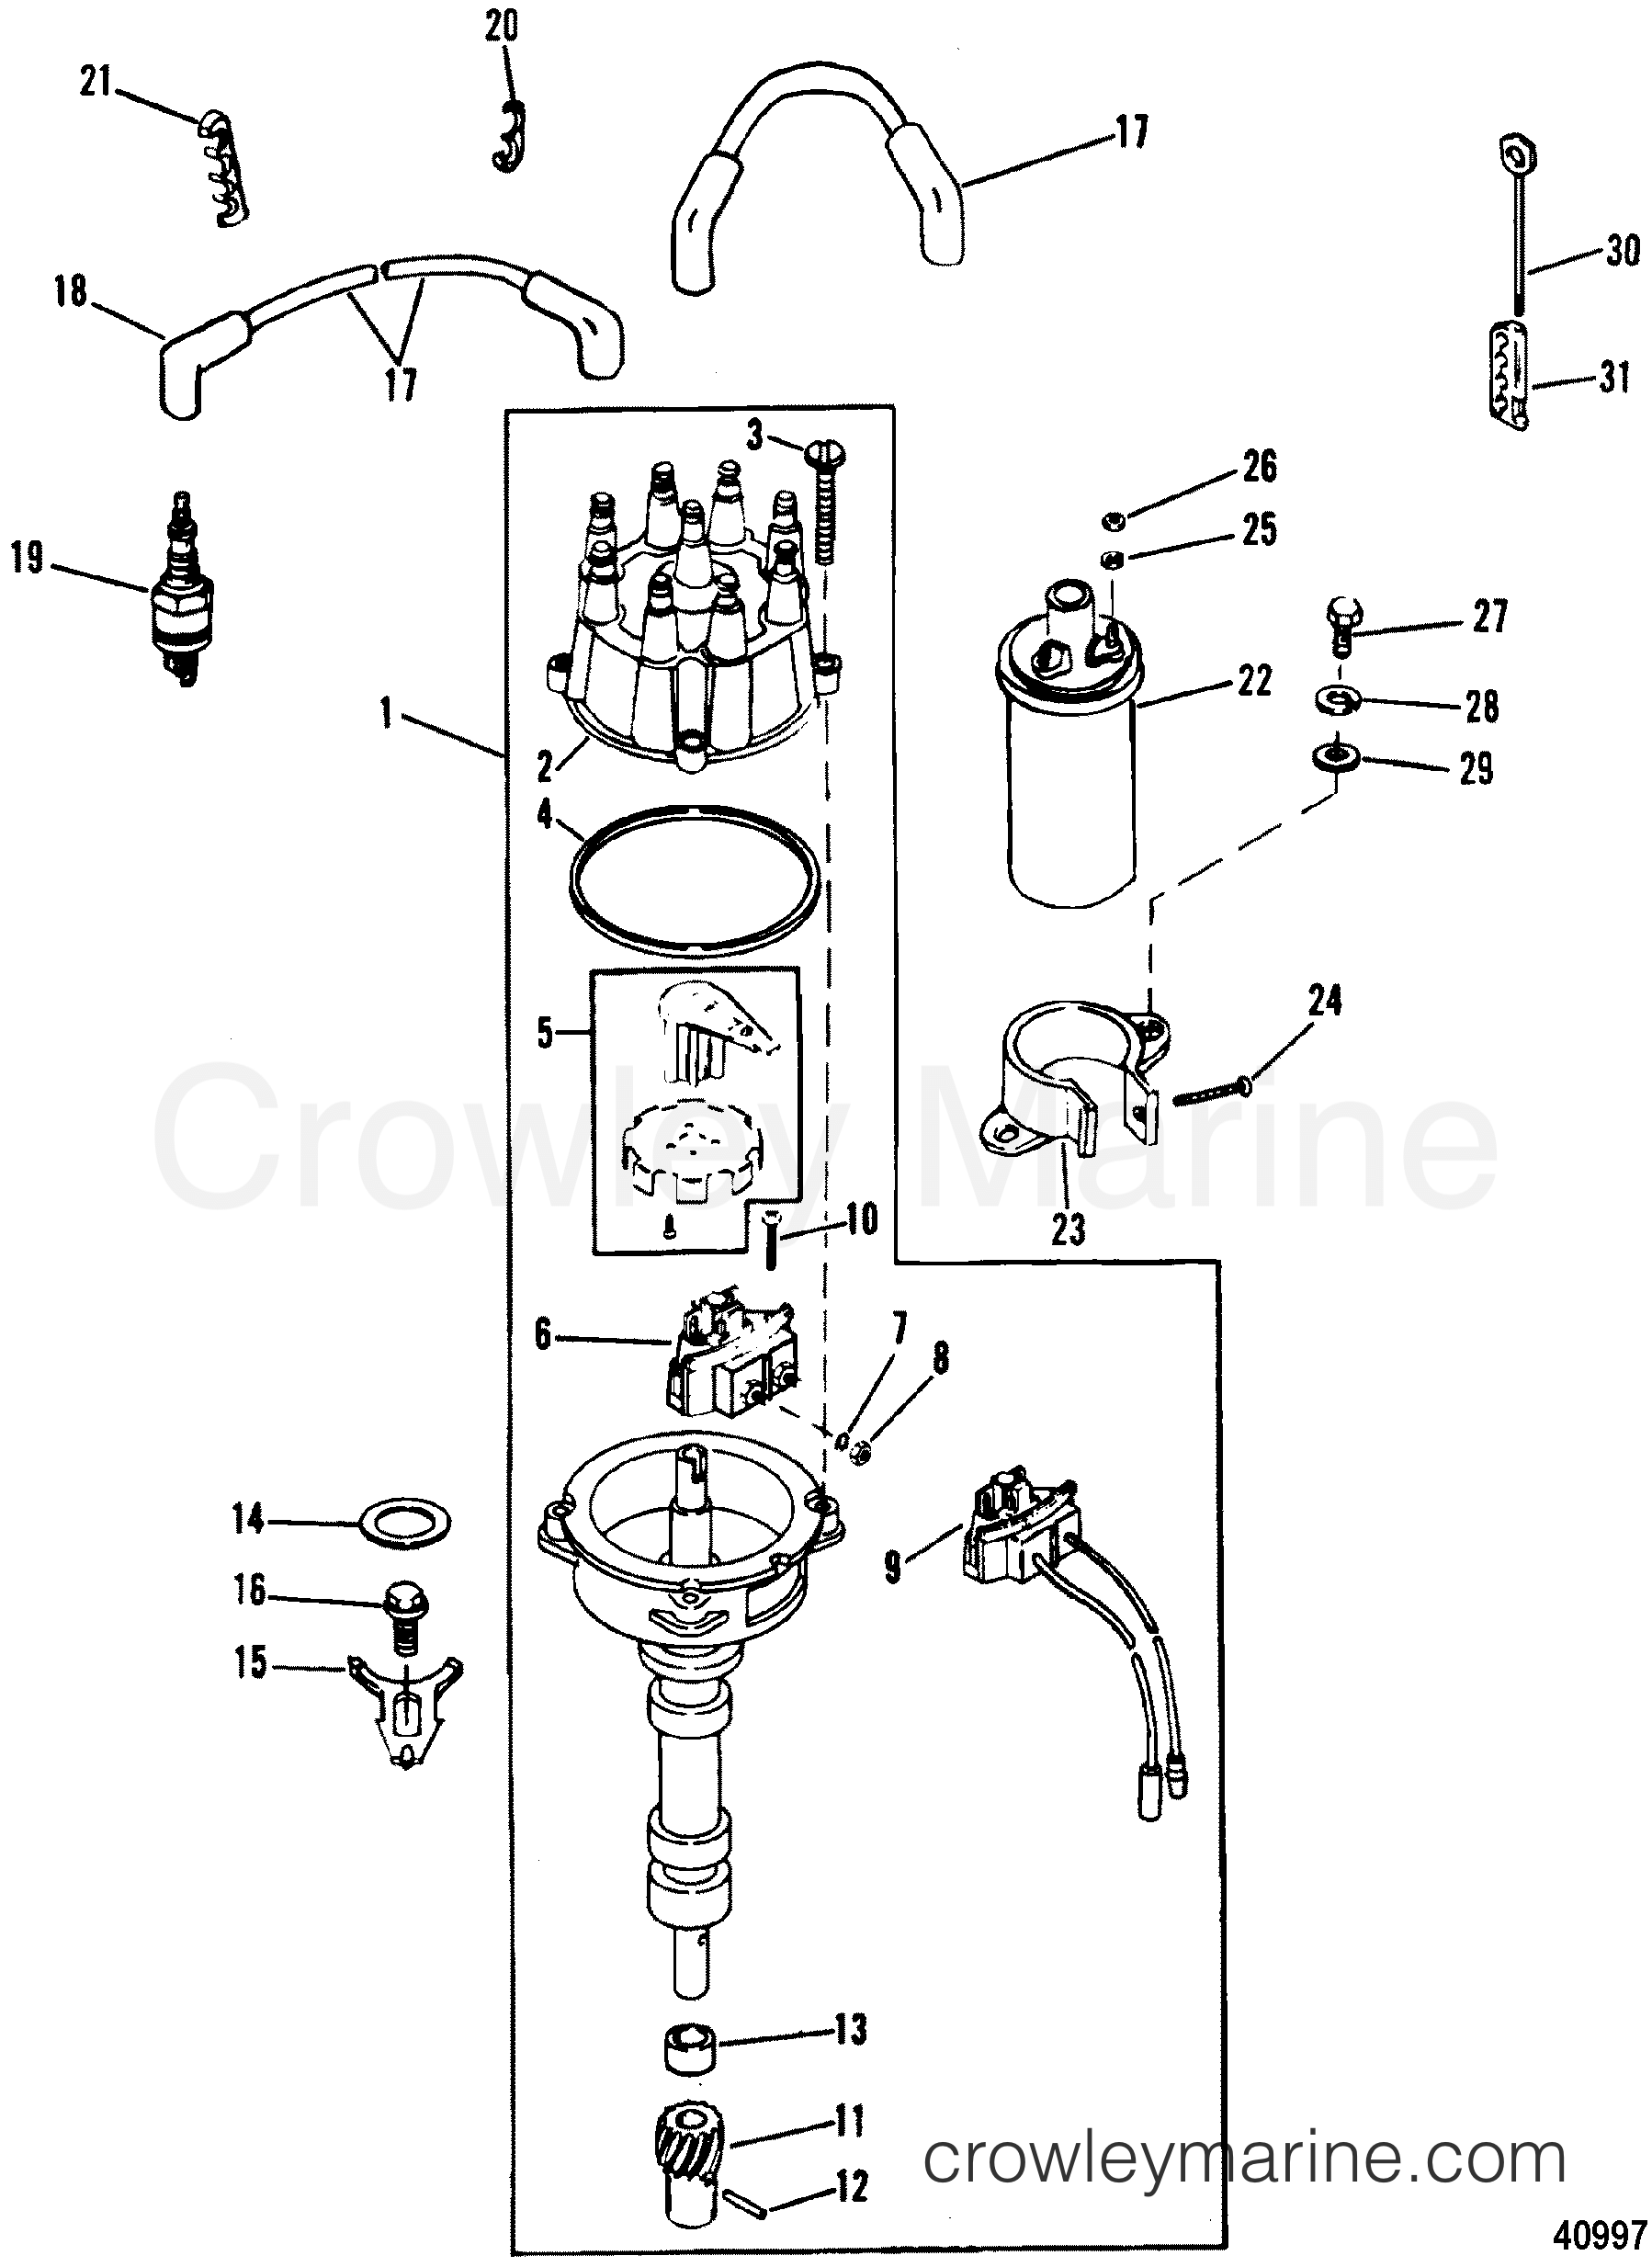 distributor ignition components thunderbolt iv ignition 1988 rh crowleymarine com 1986 Mercruiser 4 3 Engine Wiring 4.3 Vortec Mercruiser Slave Solenoid Wiring Diagram